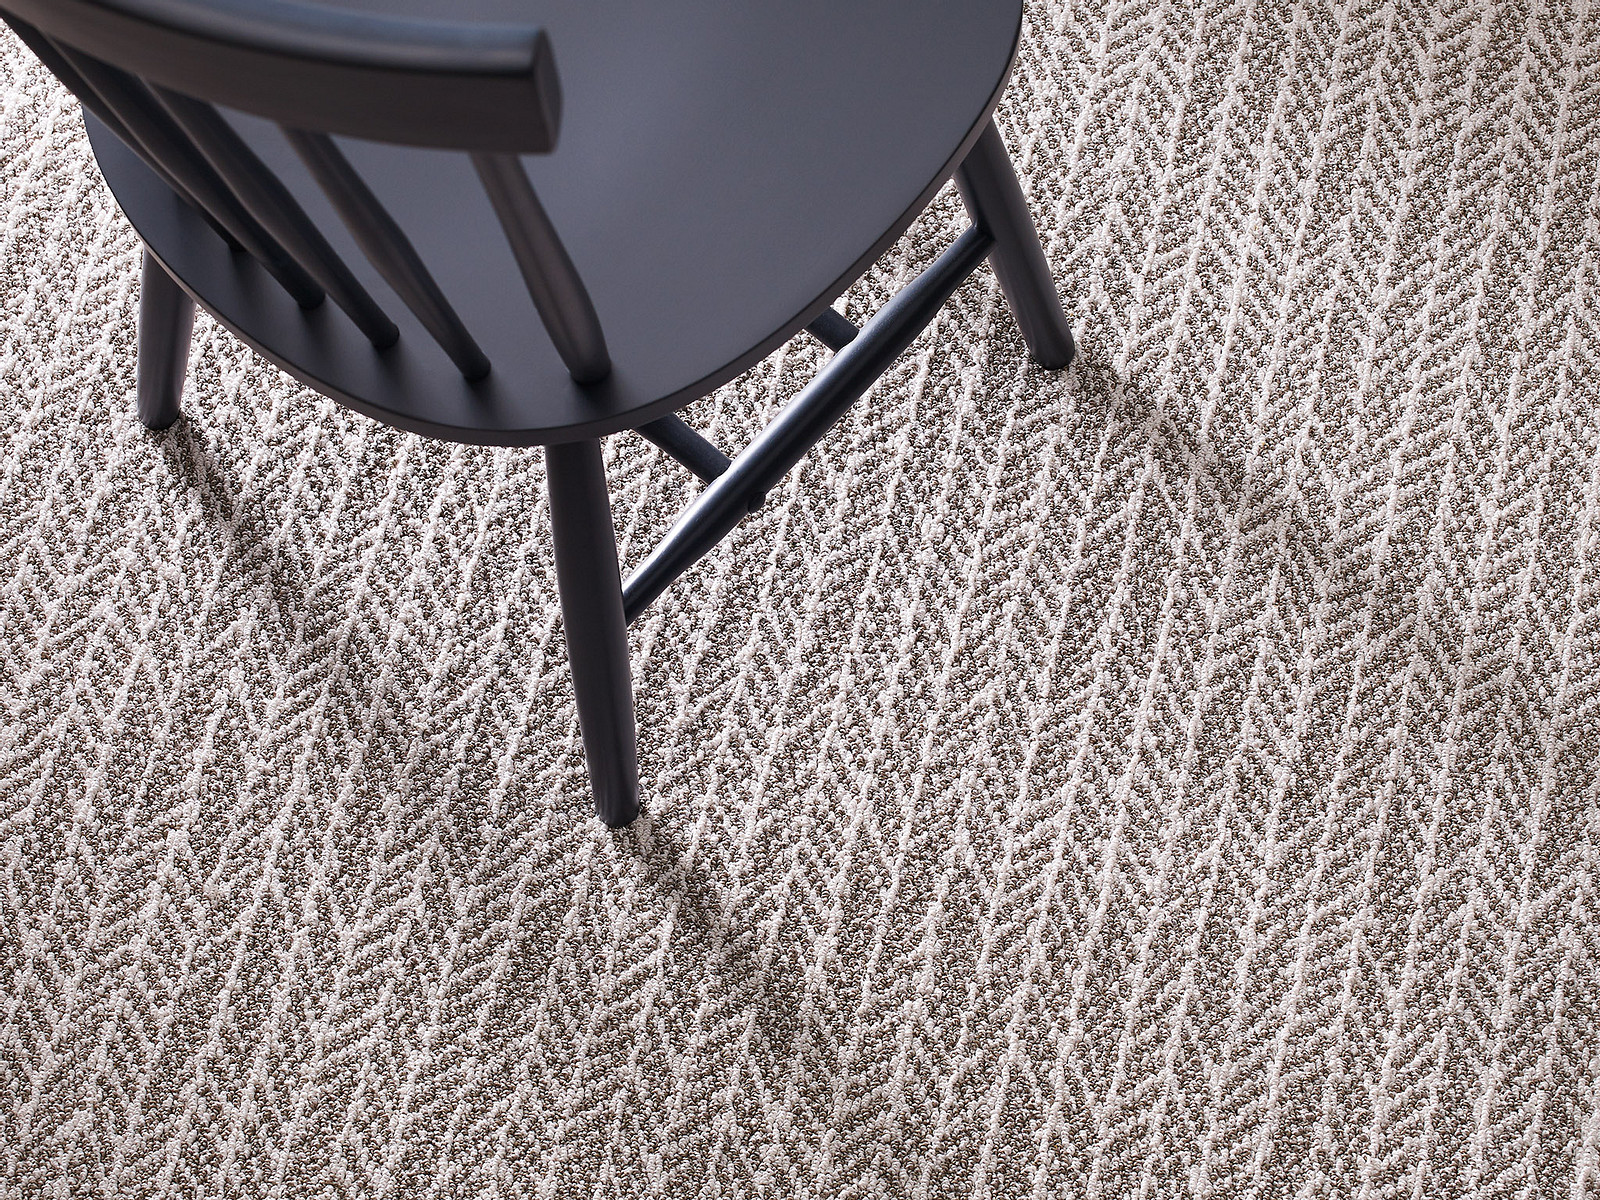 shaw carpet review image